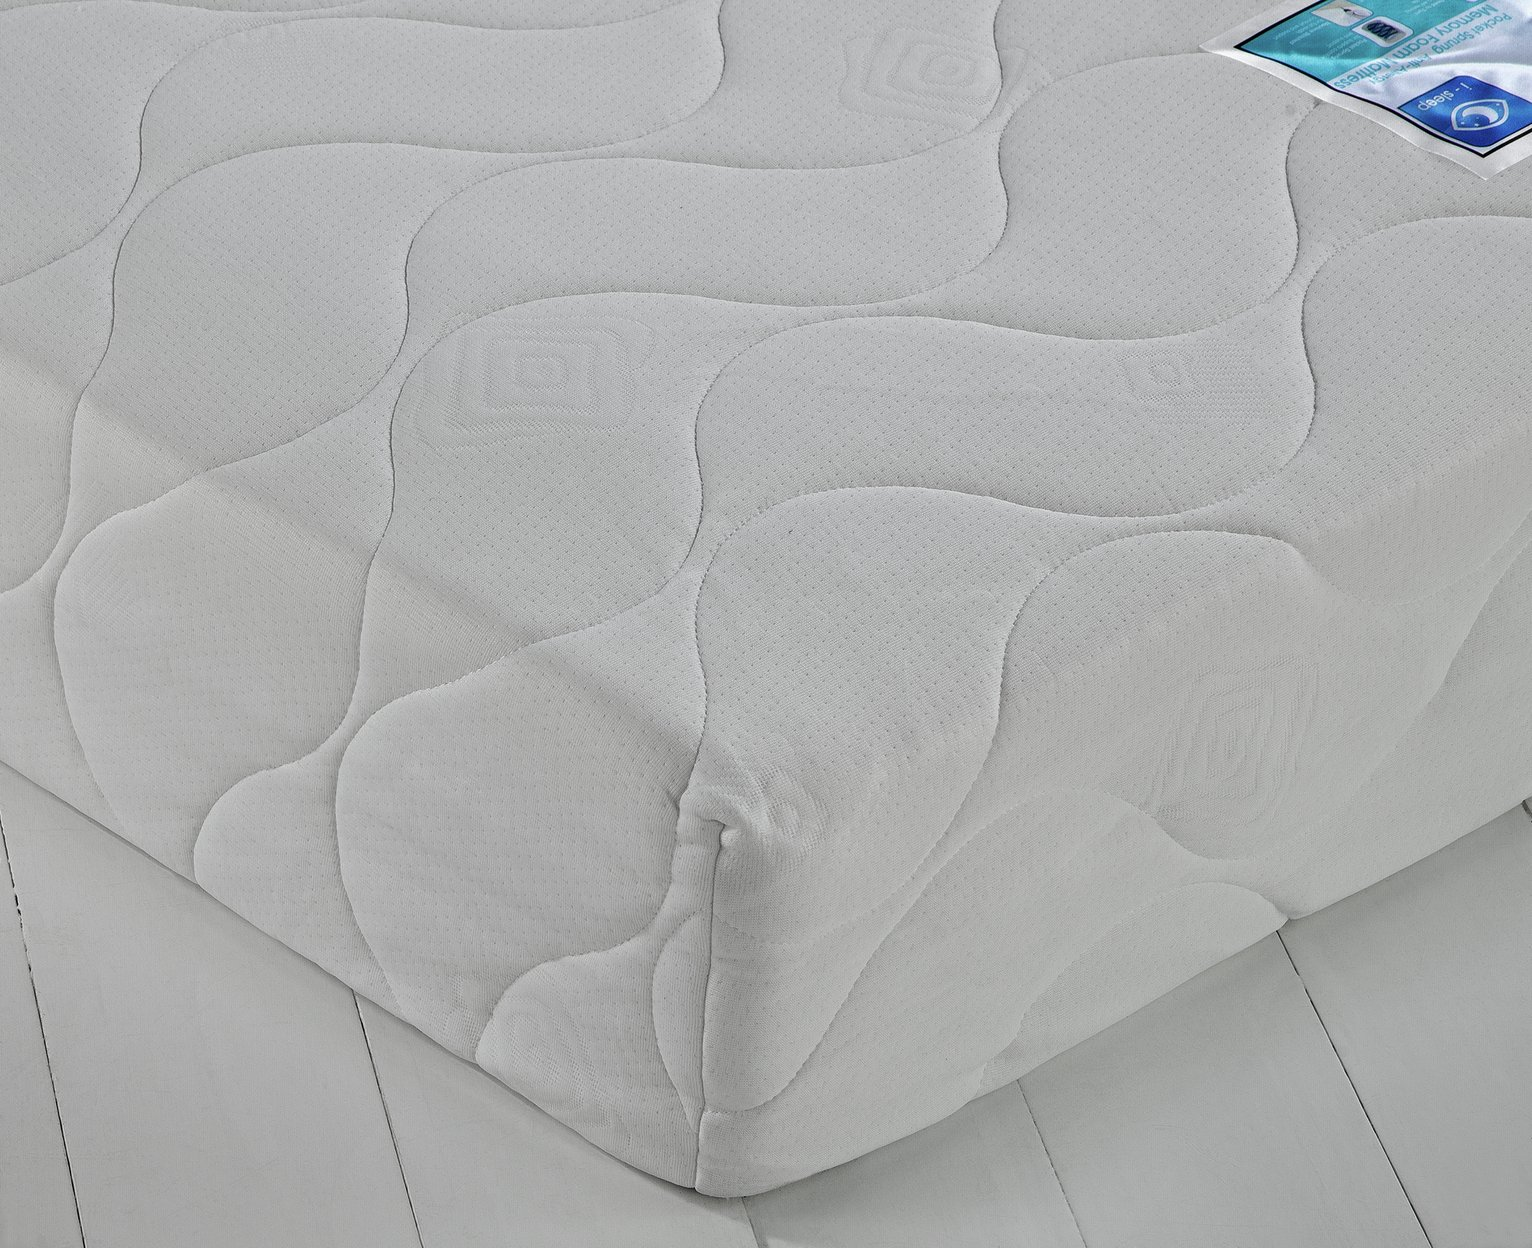 Argos Home Collect & Go Pocket Memory Foam S Double Mattress